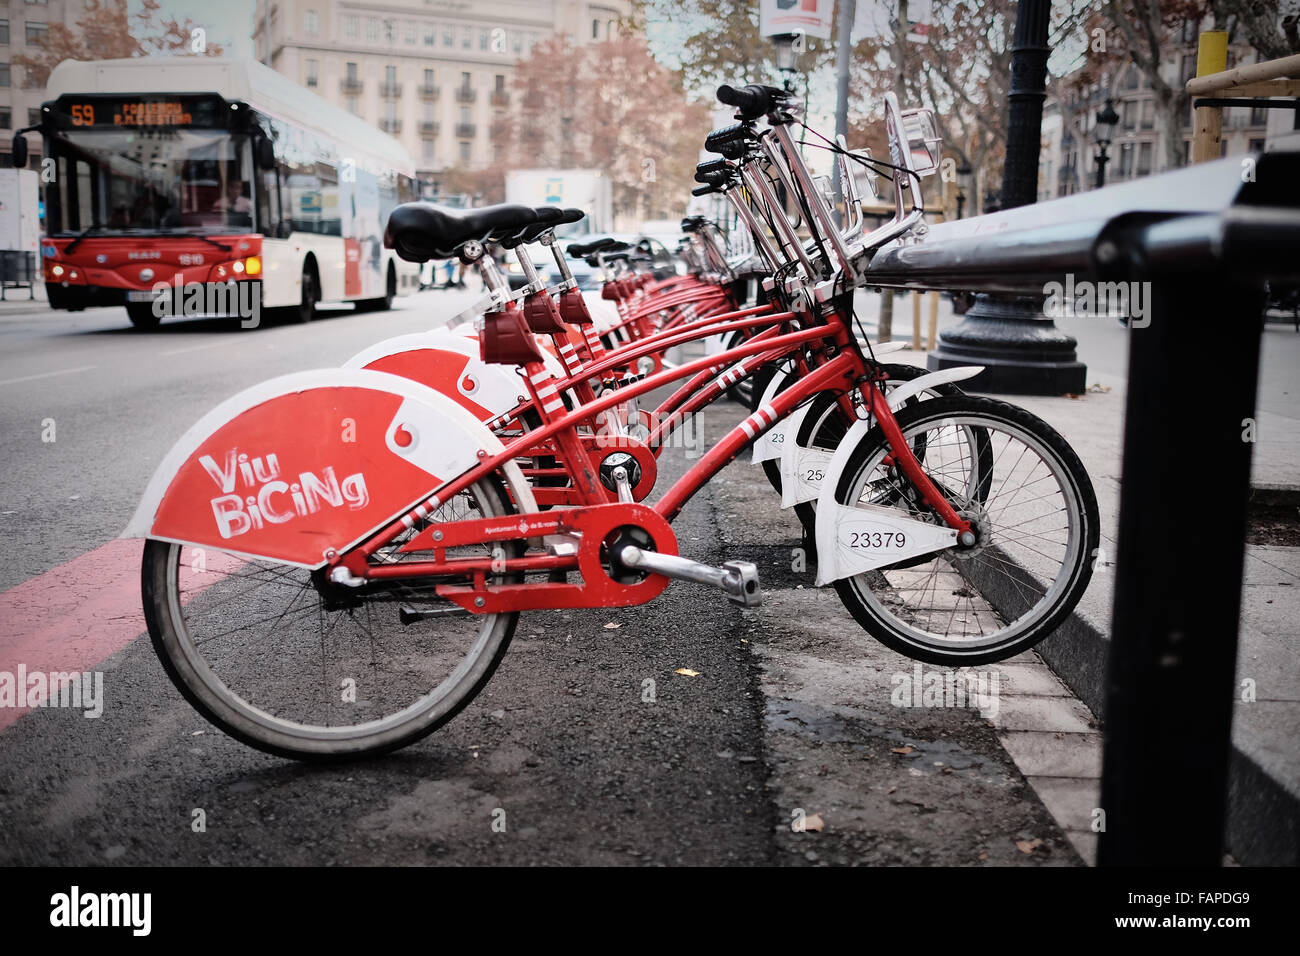 Barcelona rental city bikes and bike stand with bus in background. Public transport. - Stock Image